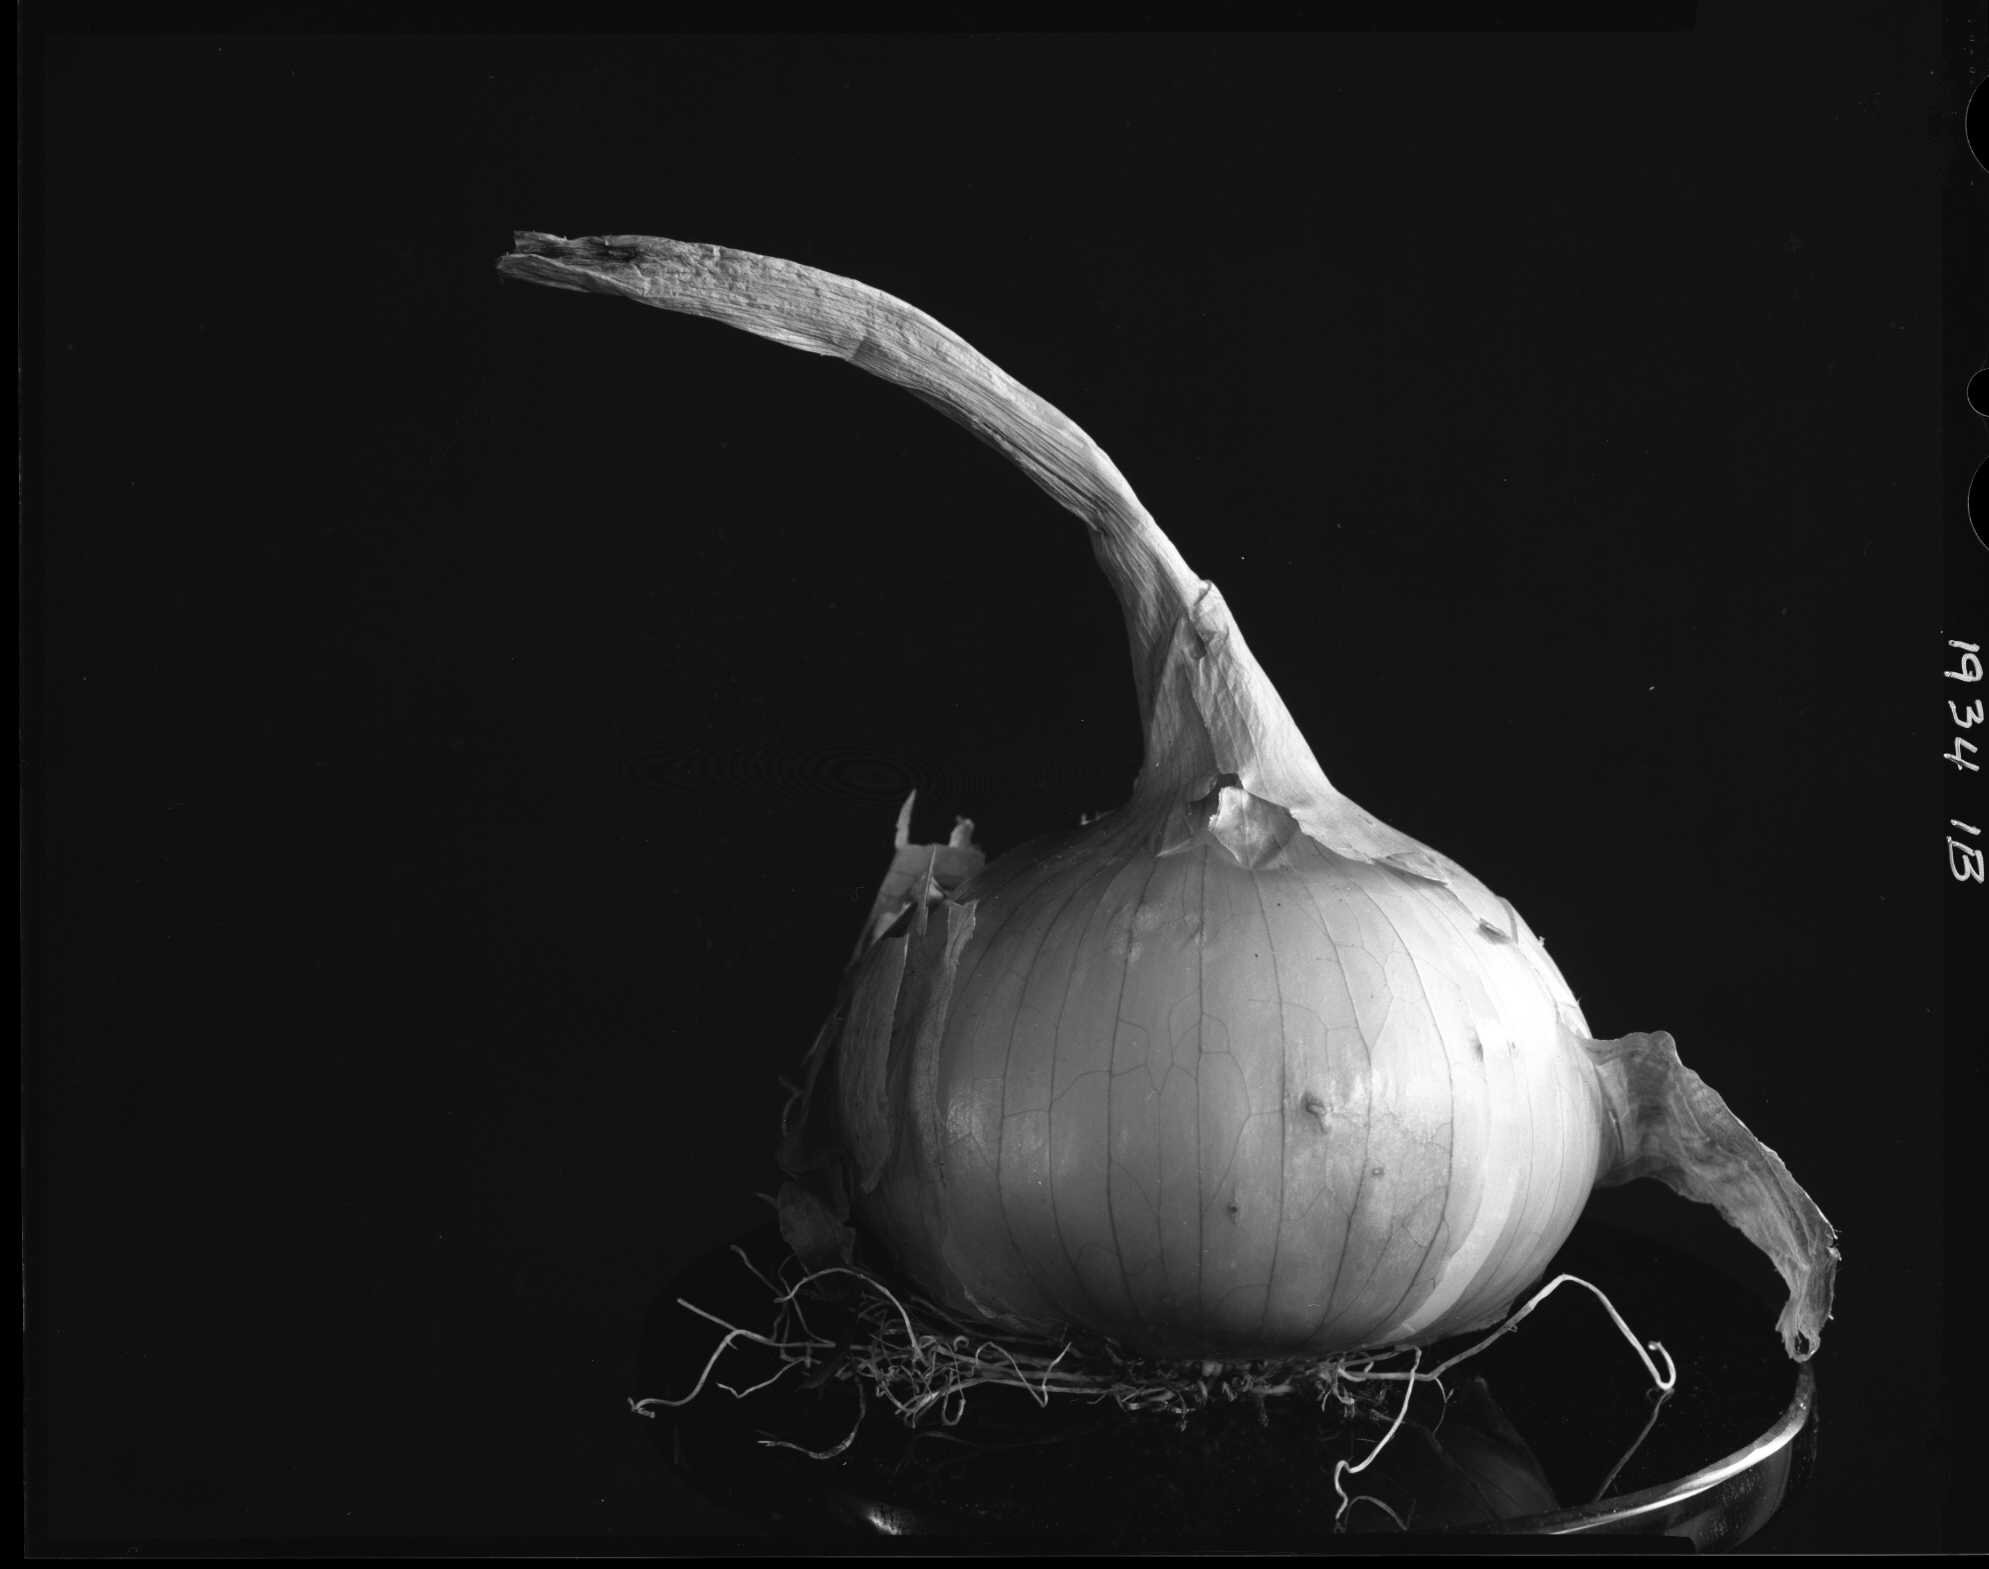 Onion, from the Produce Series